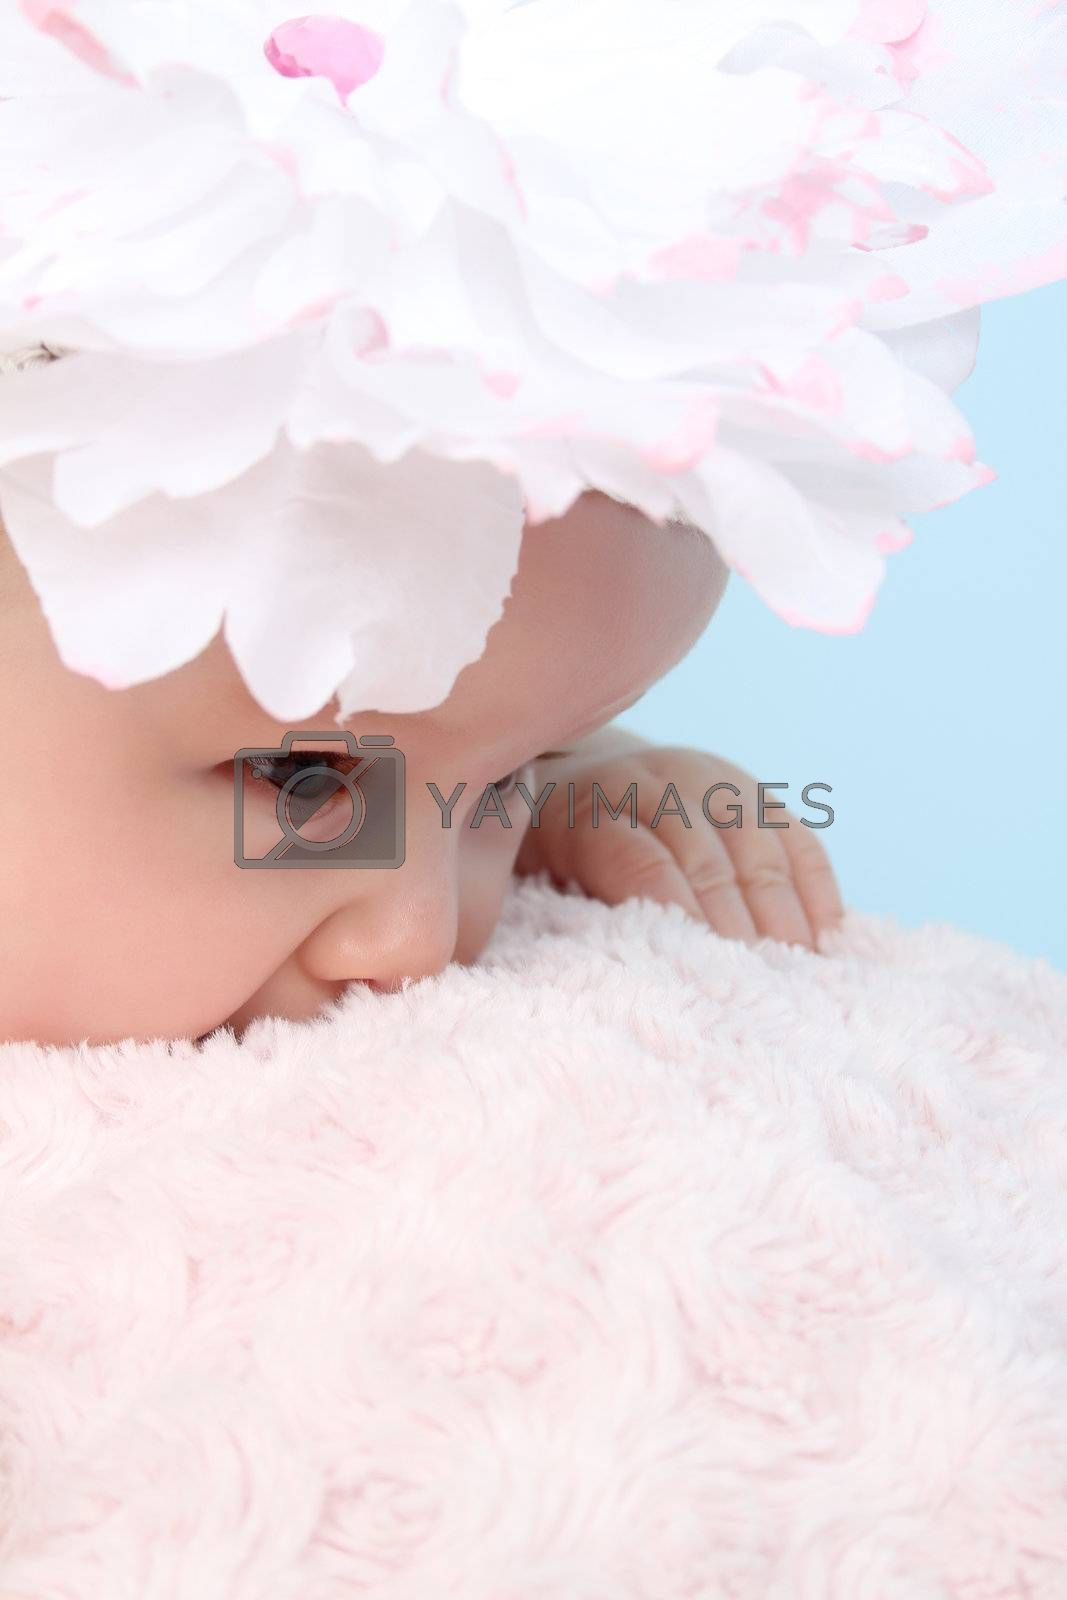 Cute baby girl with a flower hat on a fluffy pink blanket